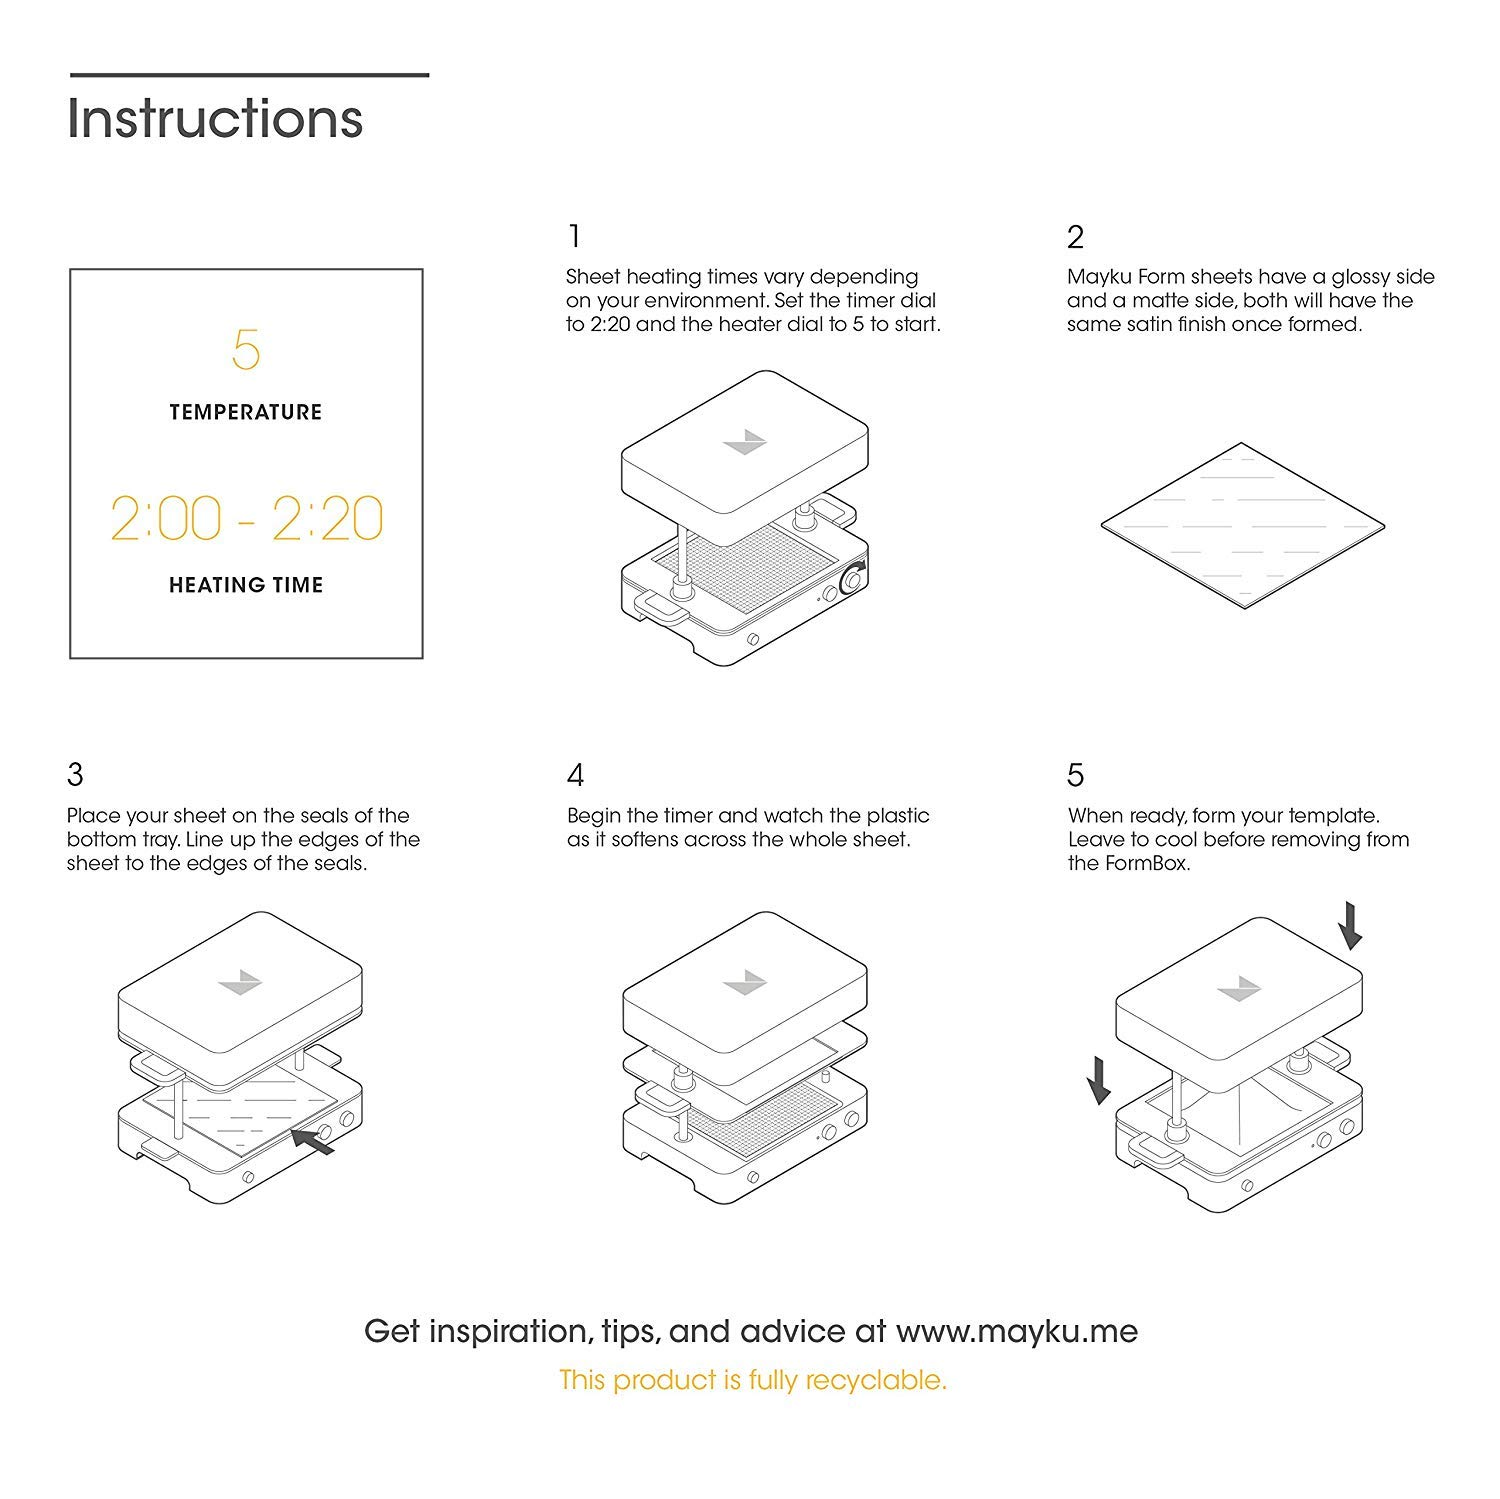 a Desktop Vacuum Former That Brings Your Ideas to Life. Mayku Form Sheets 30 Pack for The Mayku FormBox